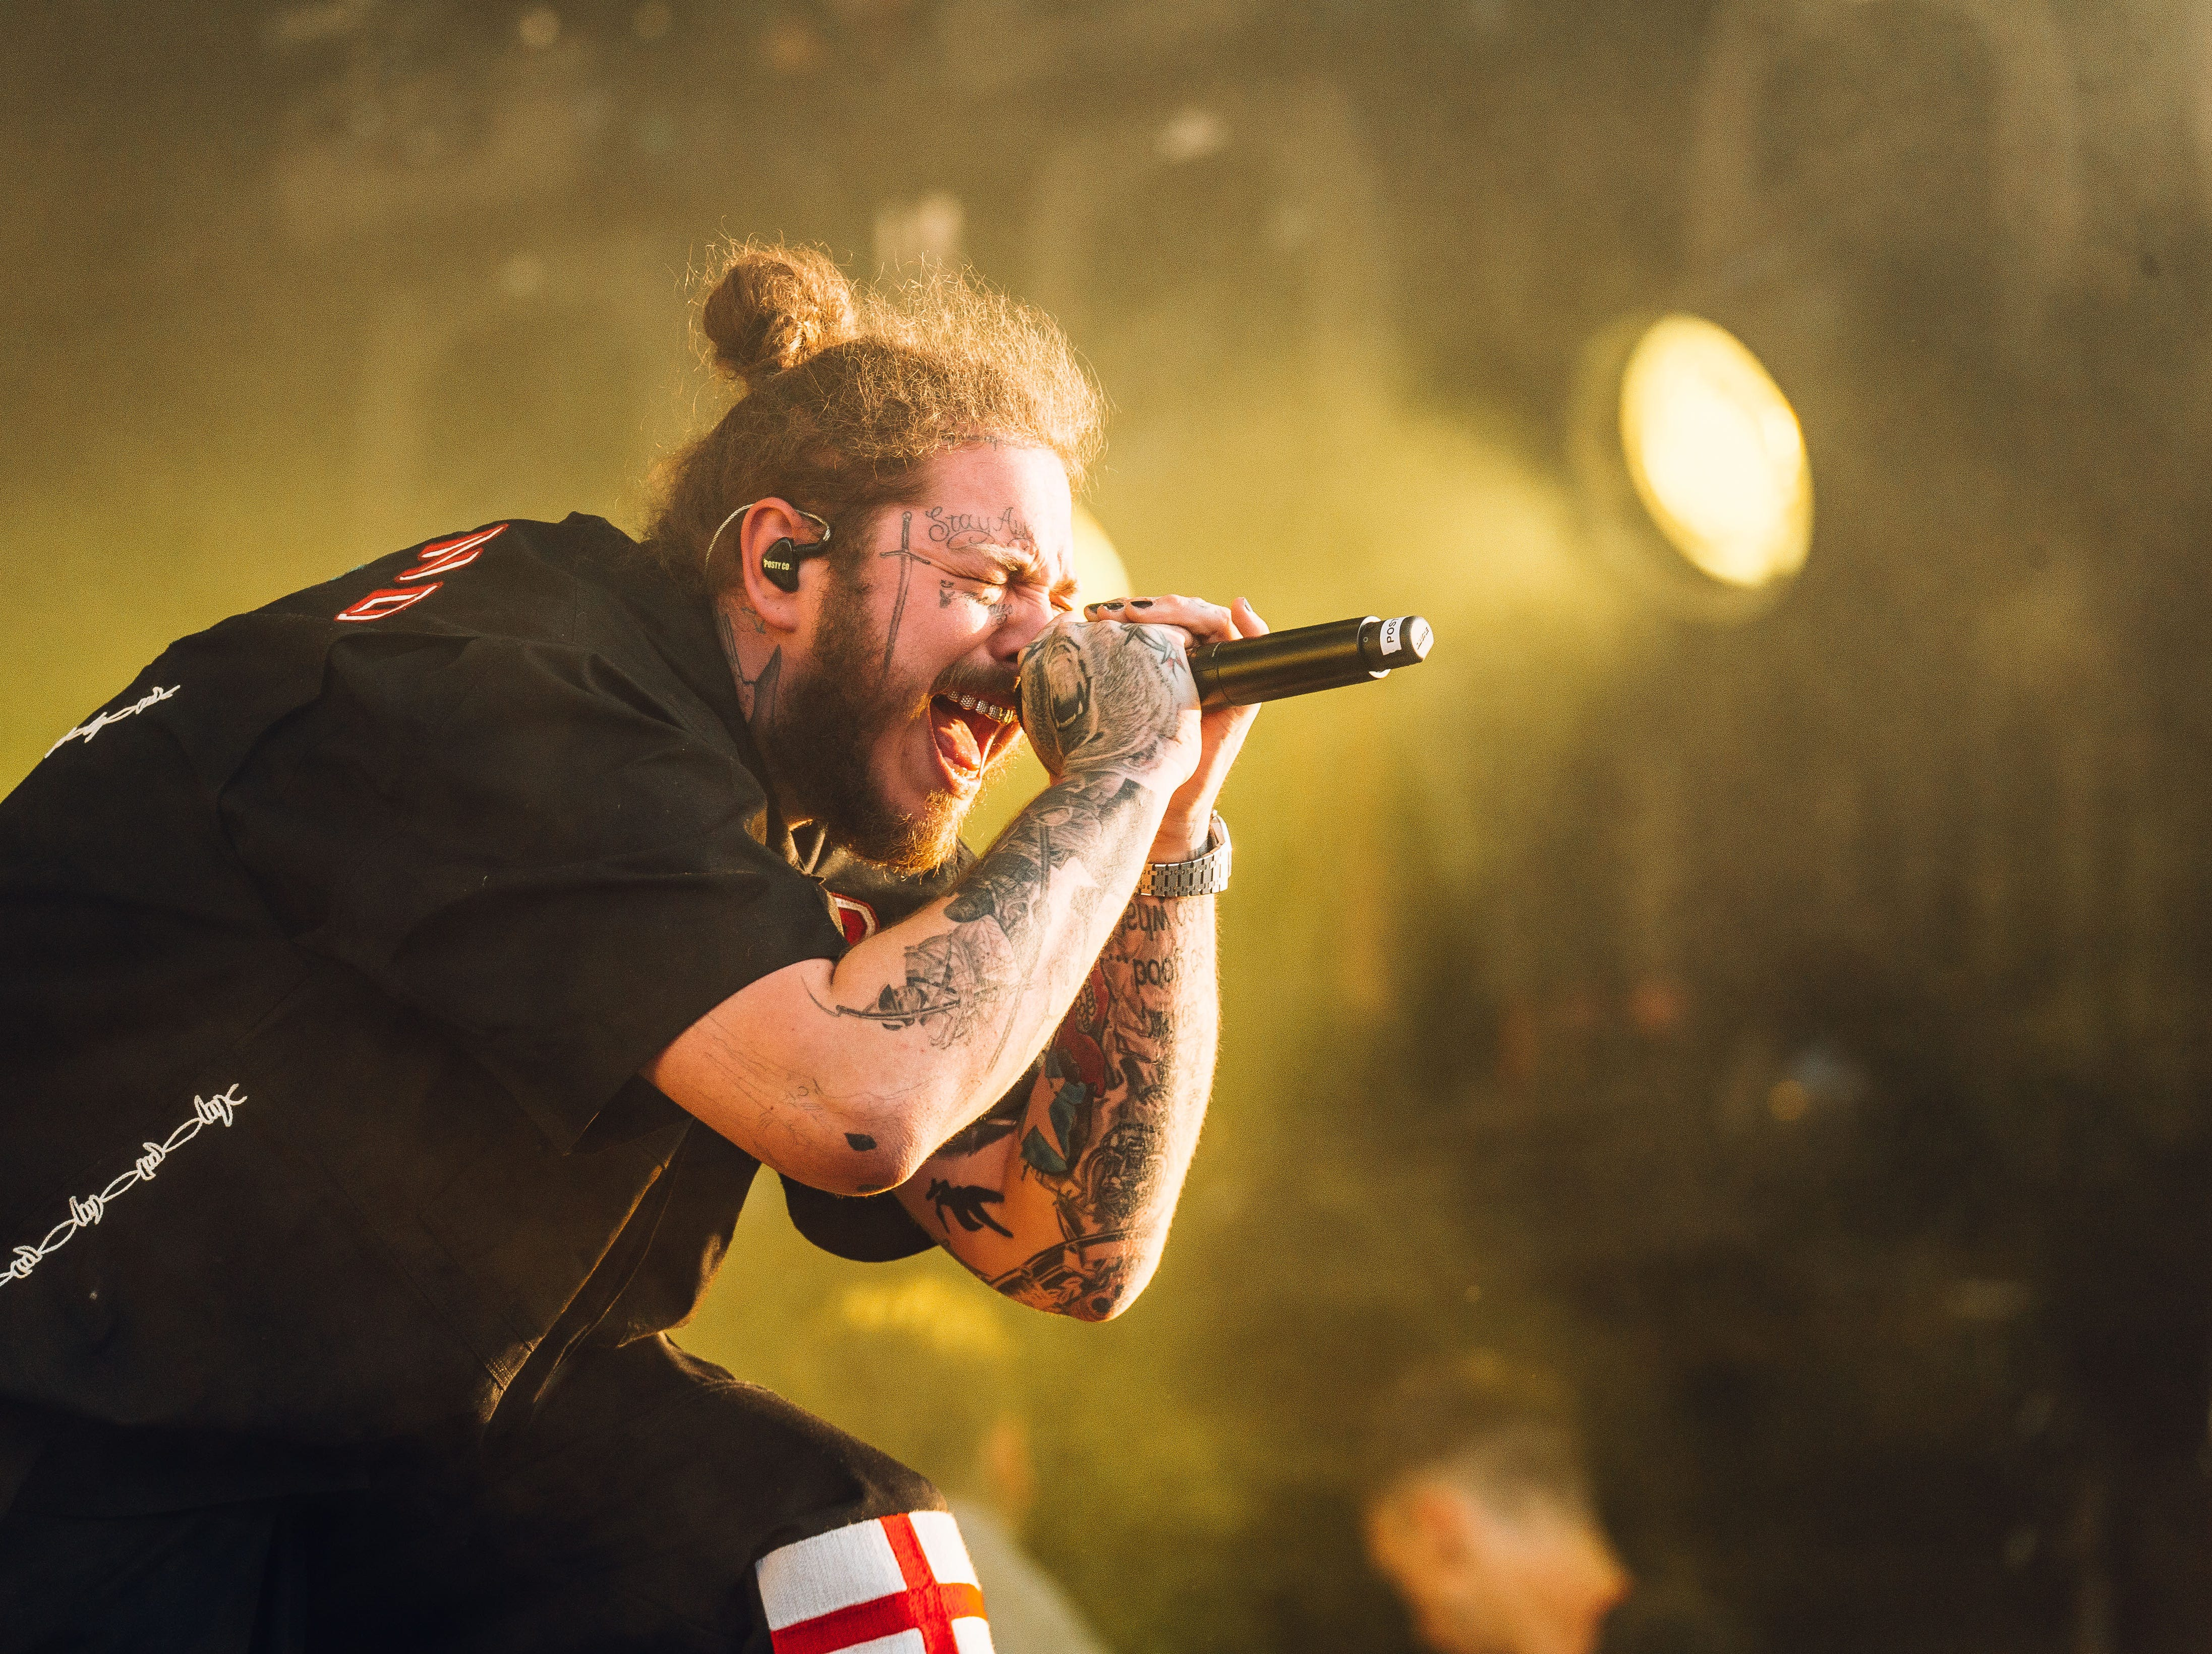 July 6: Post Malone performs at the Wireless Festival in London, England.